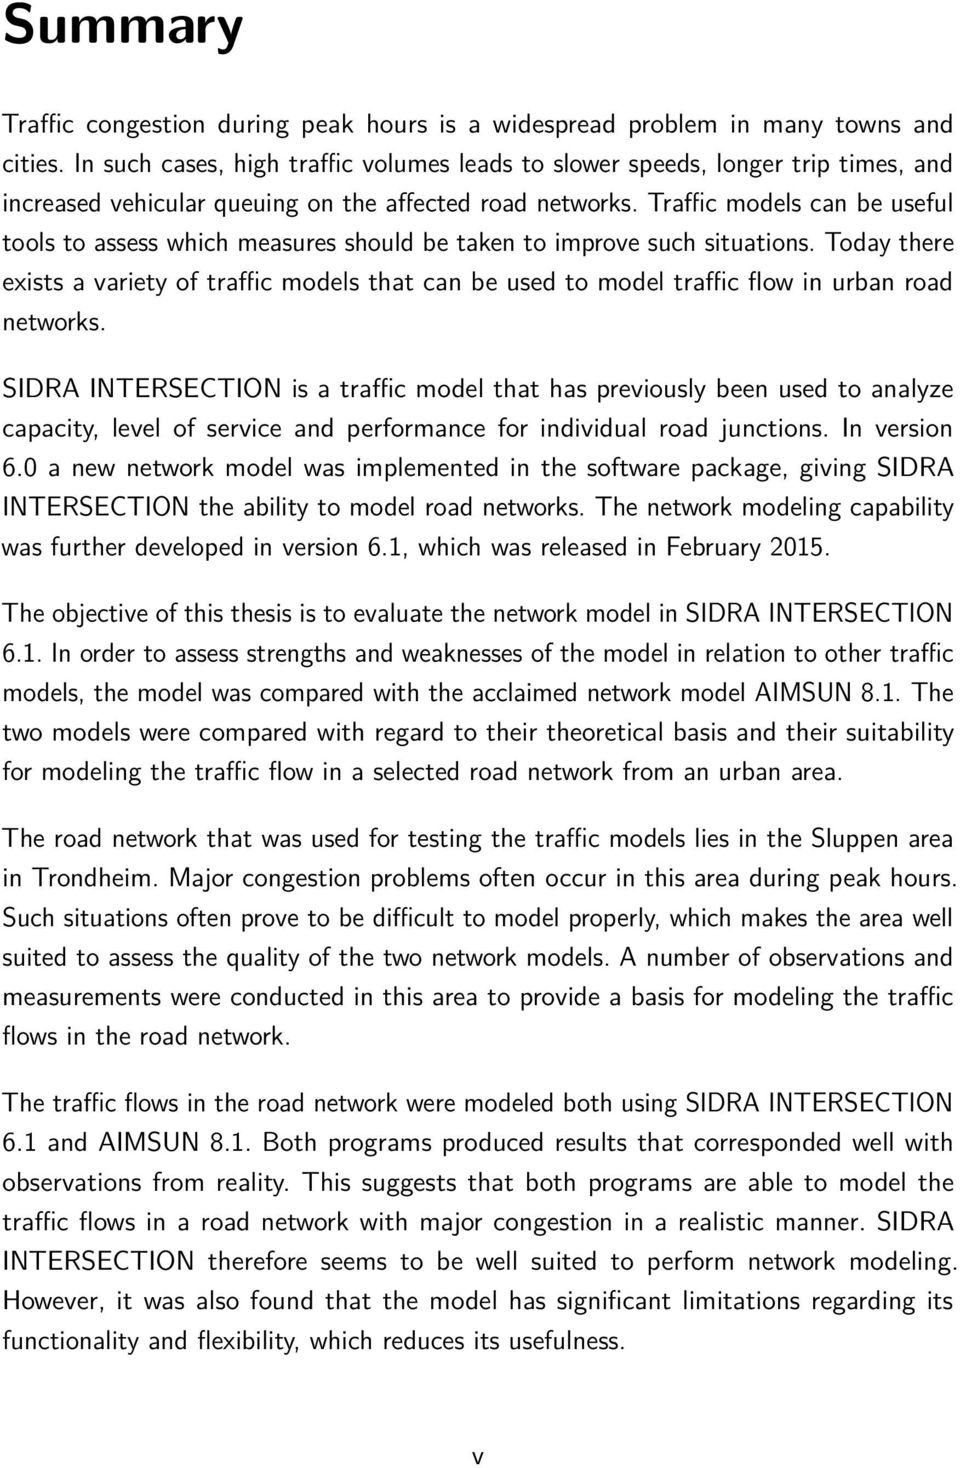 Tra cmodelscanbeuseful tools to assess which measures should be taken to improve such situations. Today there exists a variety of tra cmodelsthatcanbeusedtomodeltra cflowinurbanroad networks.